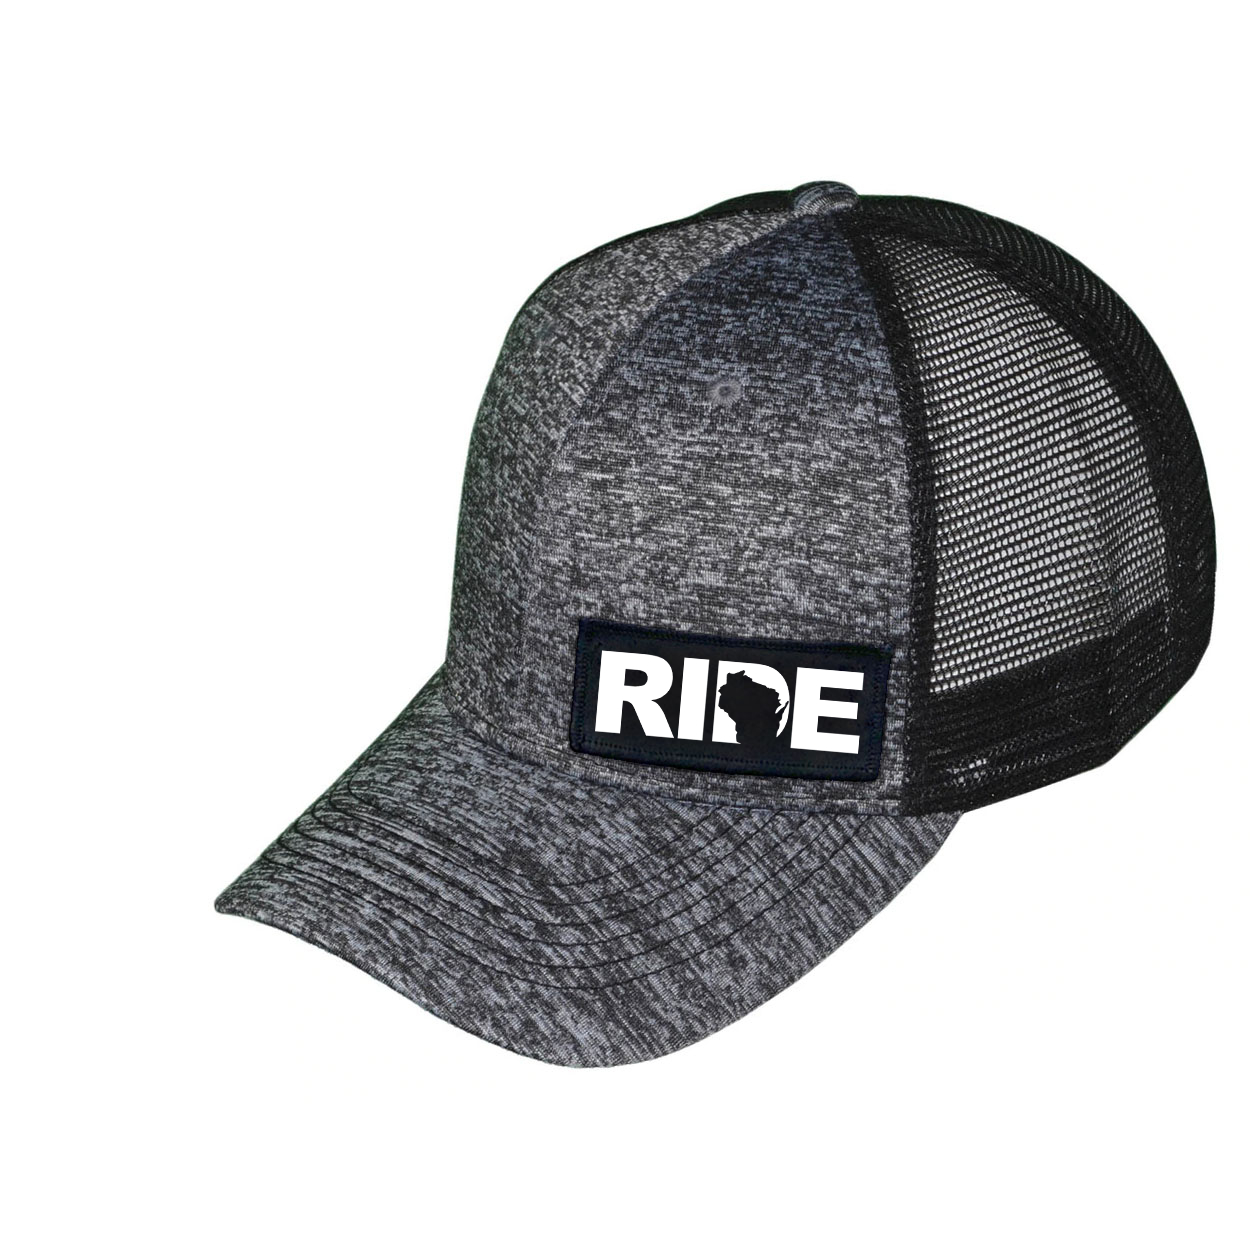 Ride Wisconsin Night Out Woven Patch Melange Snapback Trucker Hat Gray/Black (White Logo)